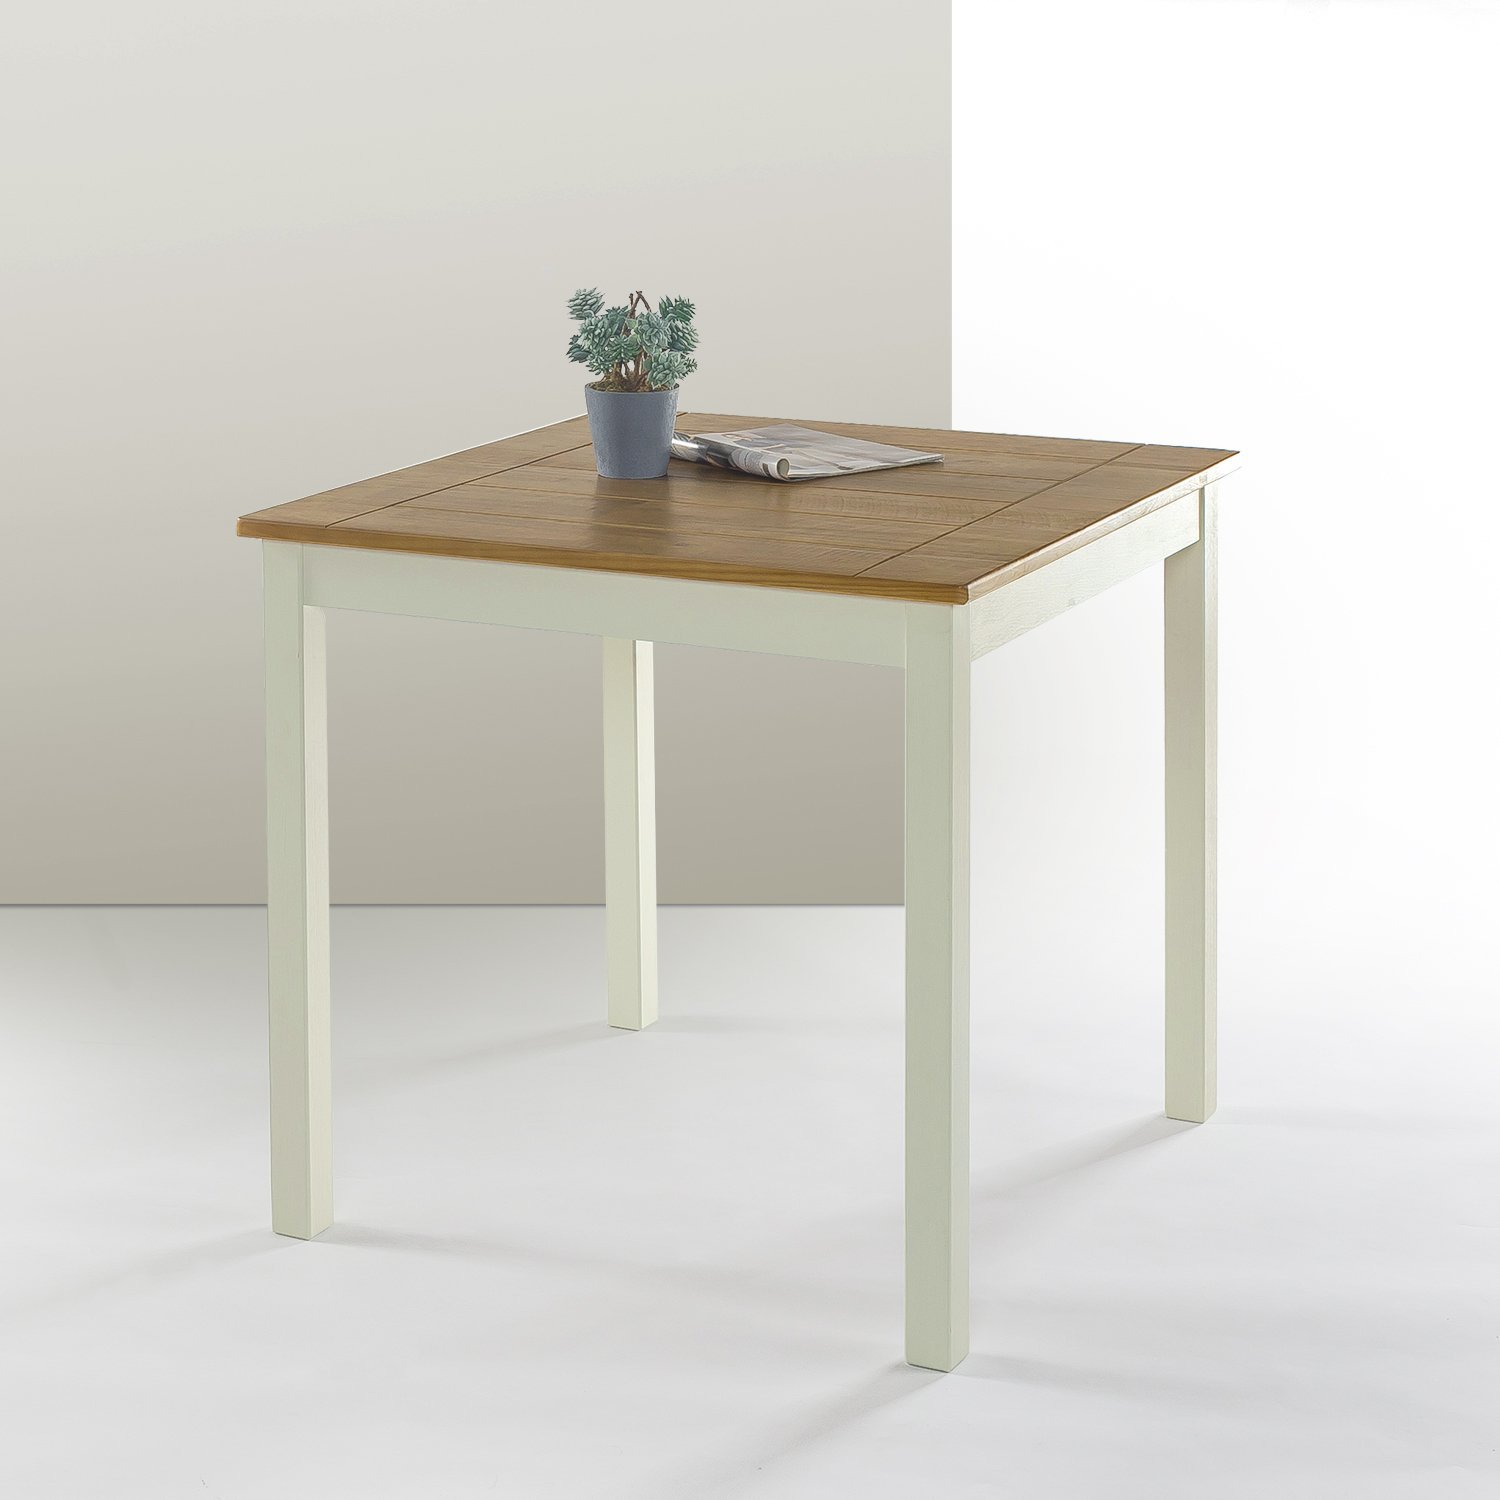 Zinus Farmhouse Square Wood Dining Table by Zinus (Image #2)